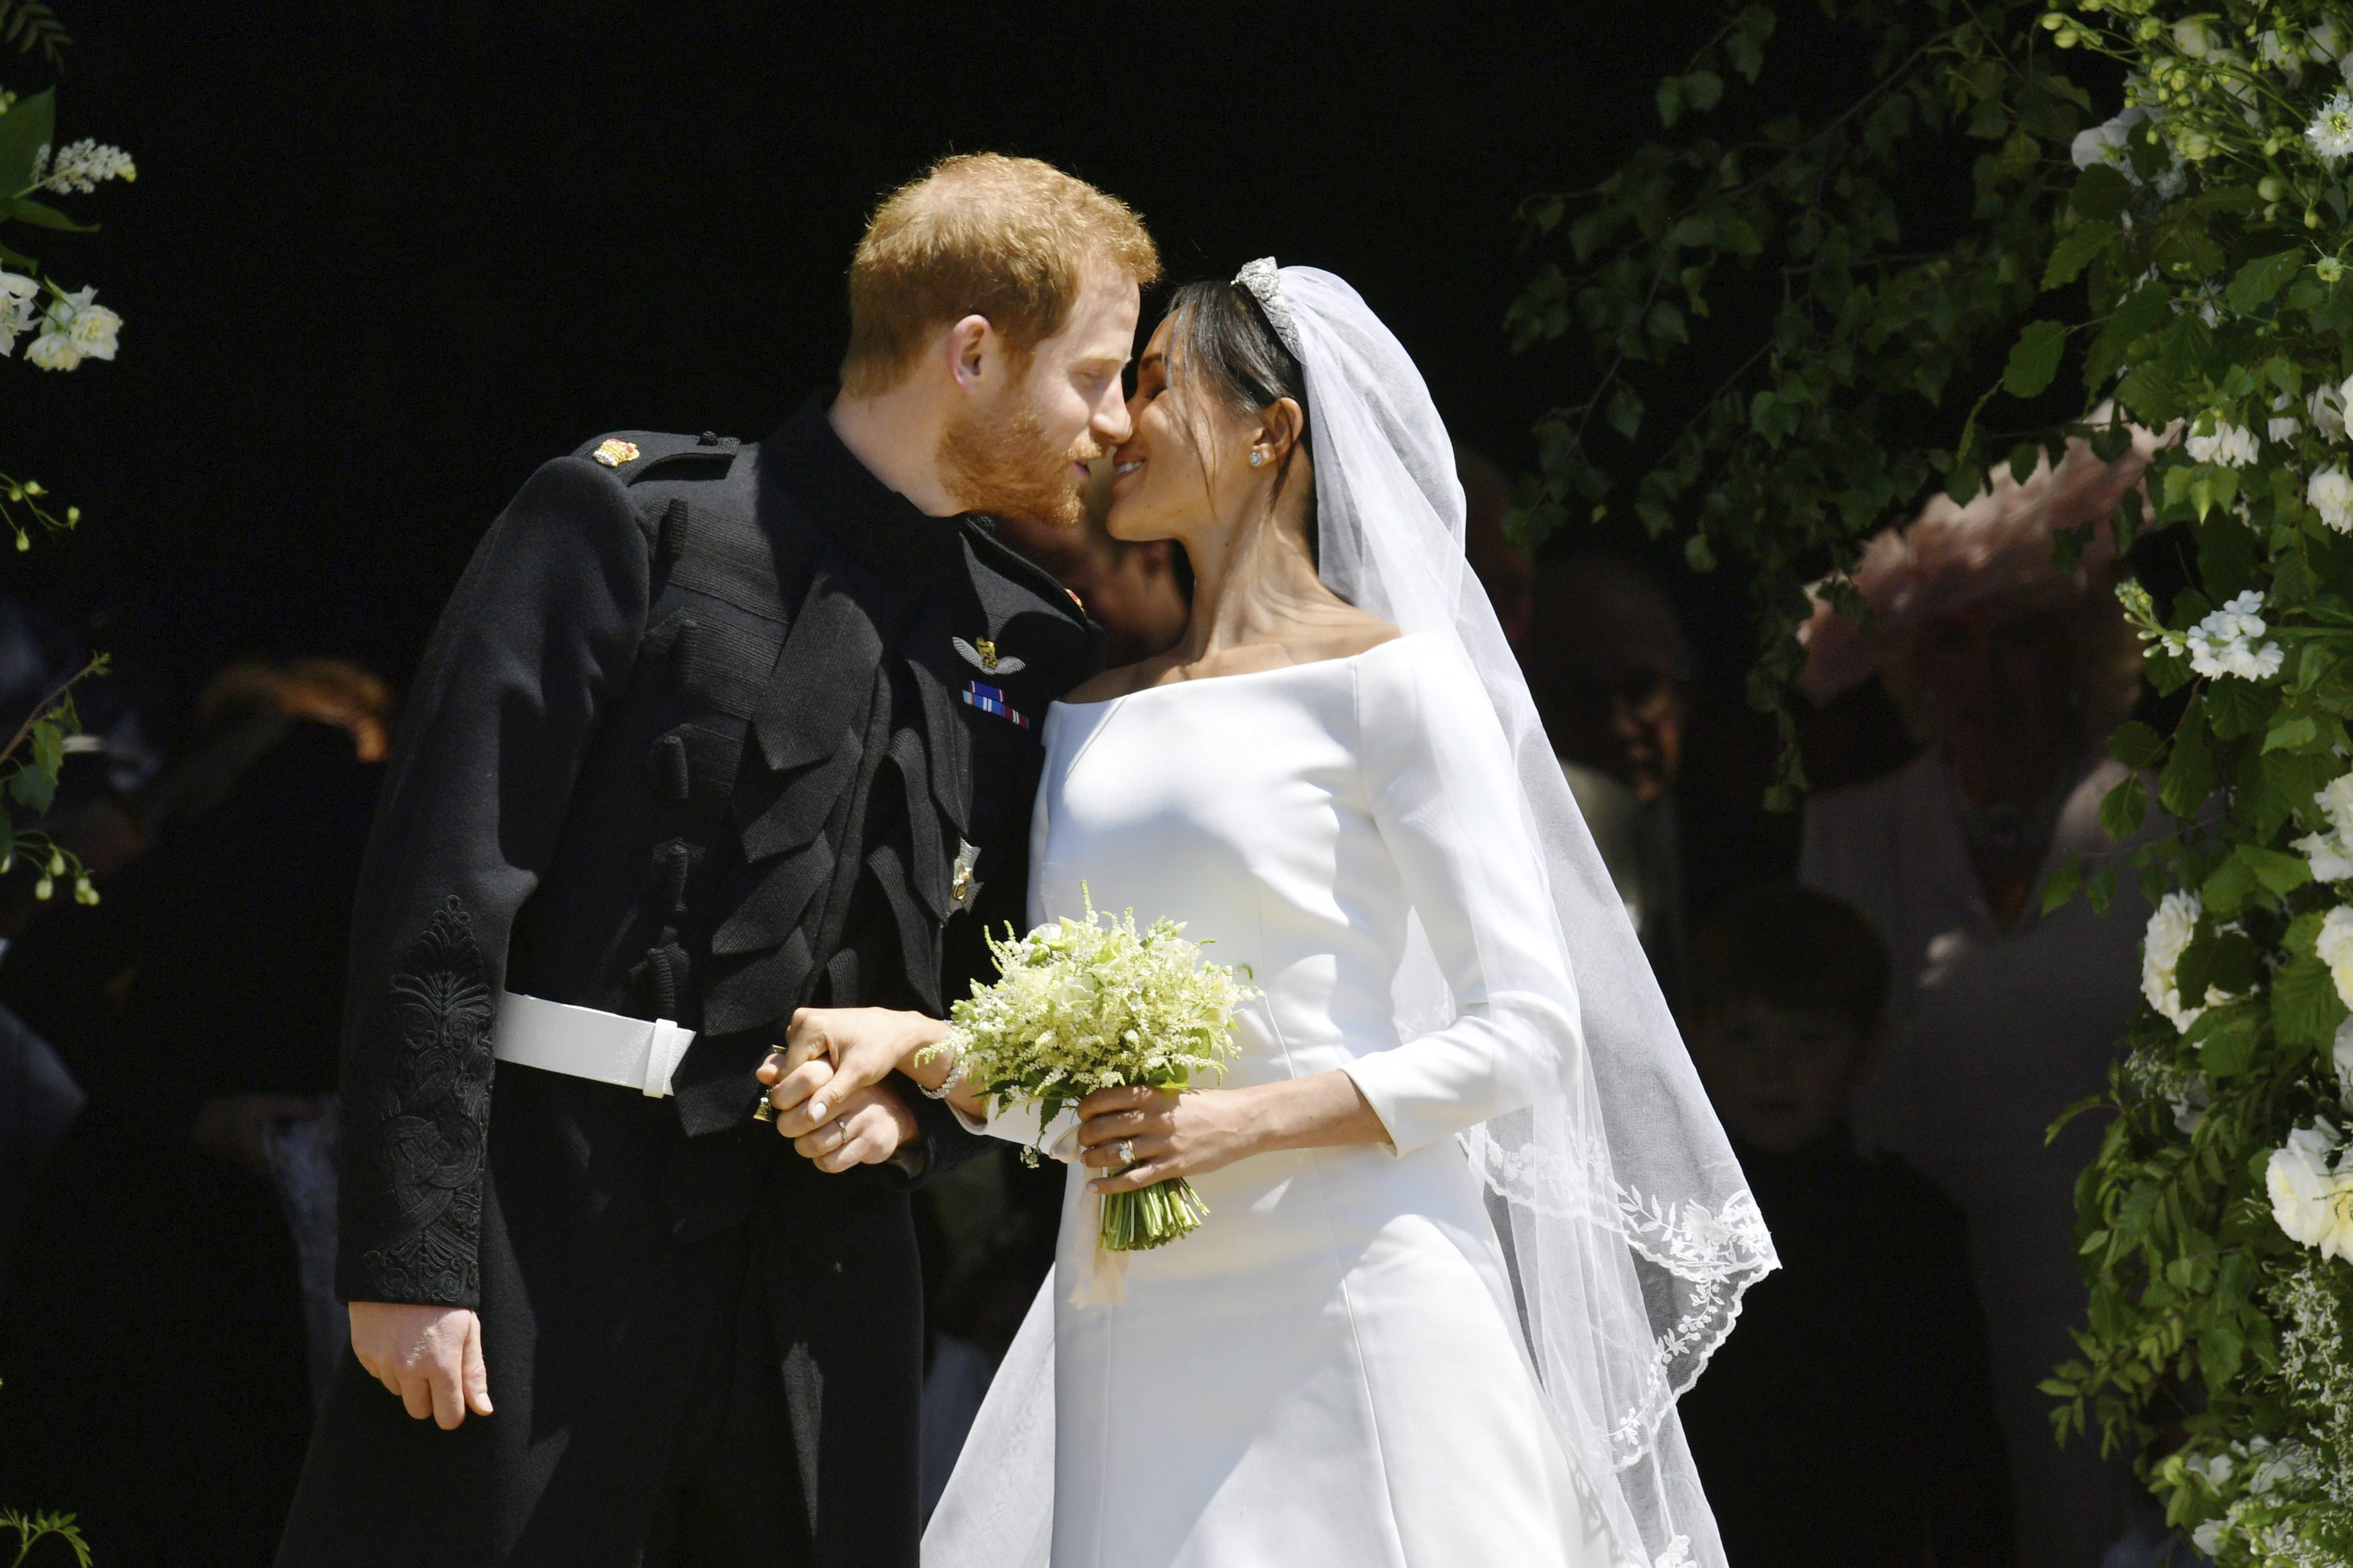 Wedding Of Prince Harry And Meghan Markle.The Extraordinary Wedding Of Prince Harry And Meghan Markle